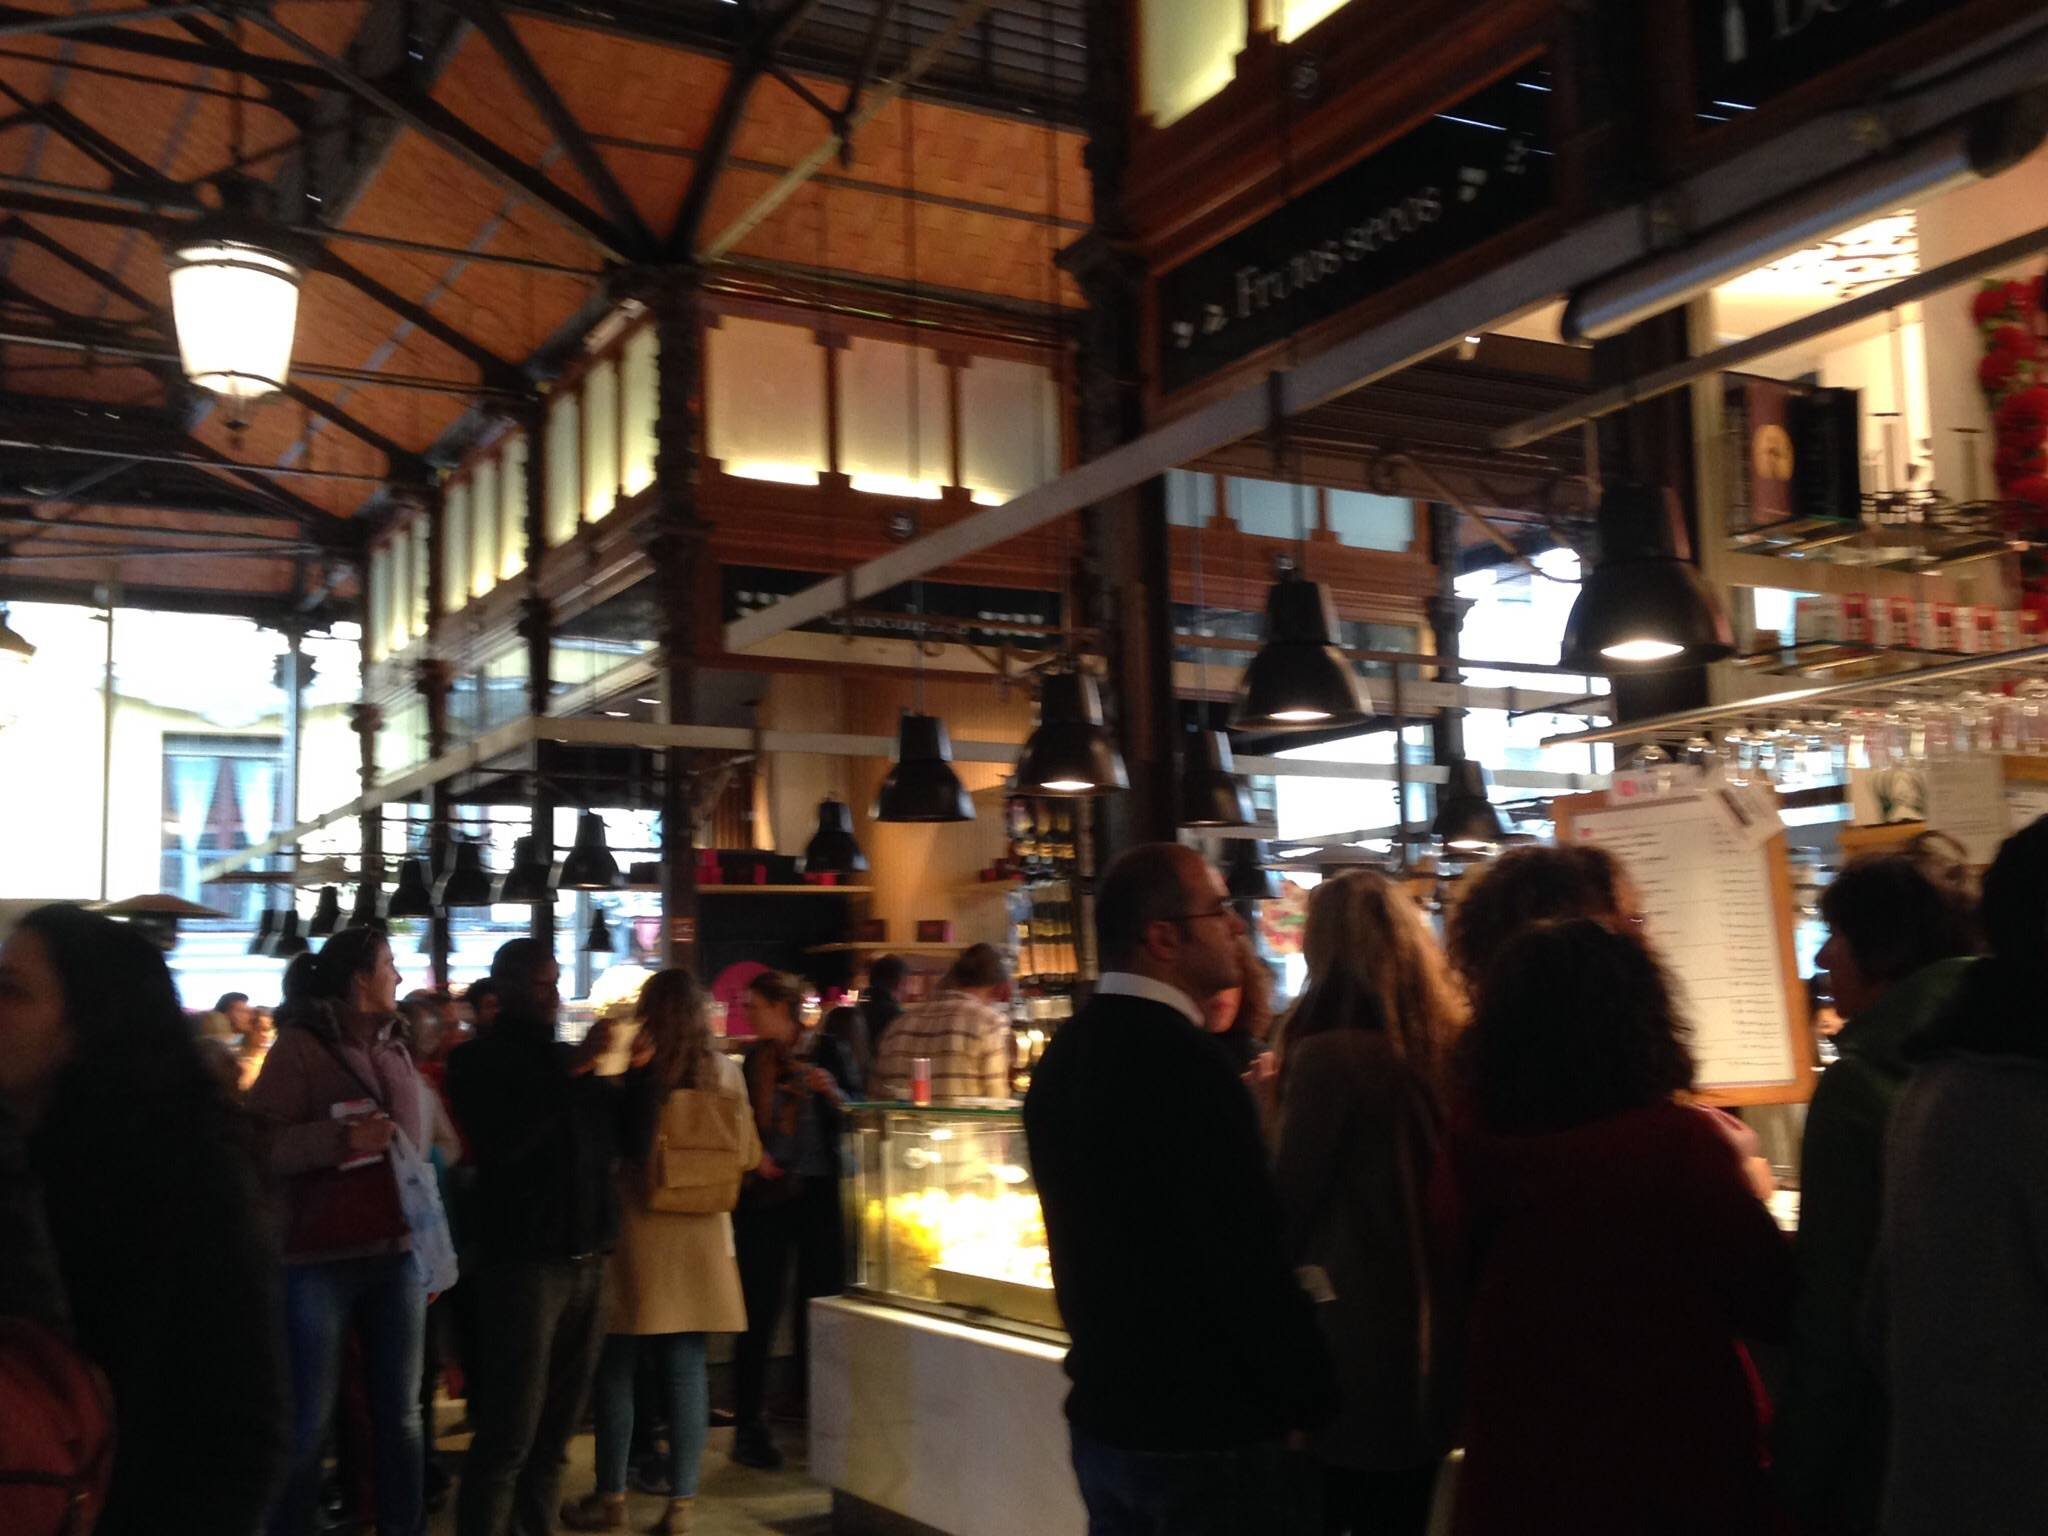 Photo 1: Mercado San Miguel